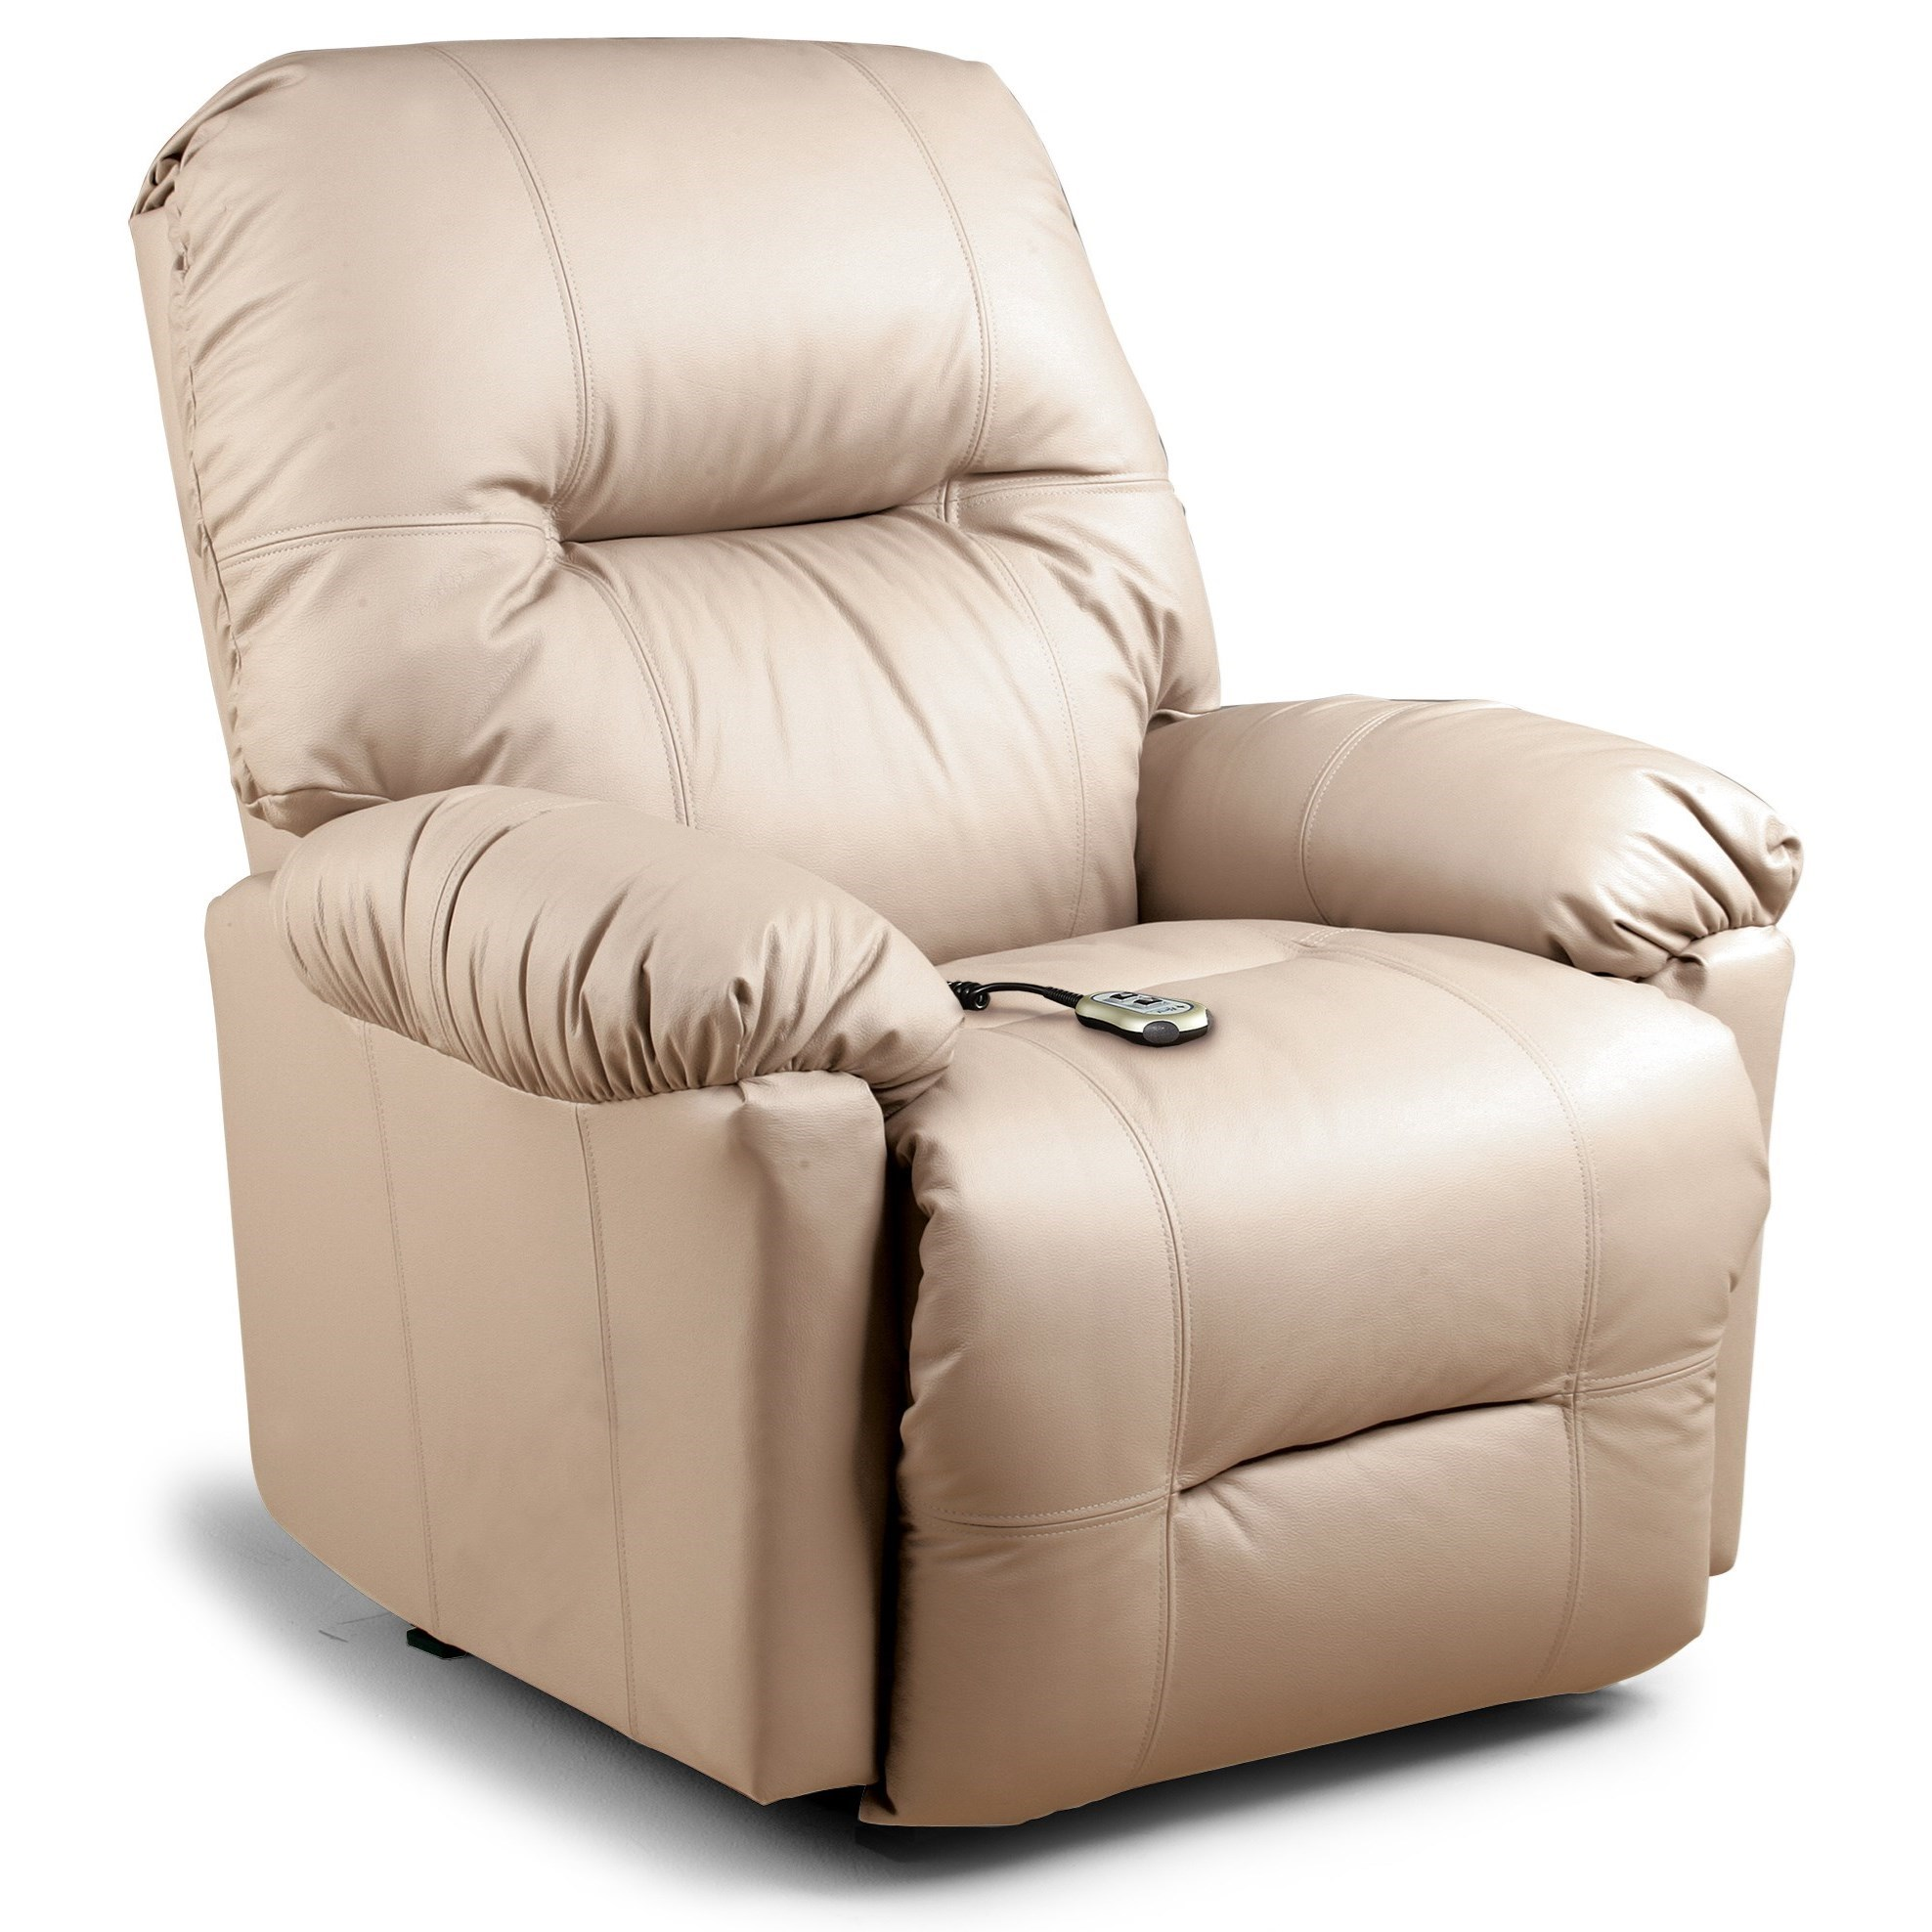 Best Home Furnishings Recliners - Petite Wynette Power Lift Recliner - Item Number: 9MW11-1L